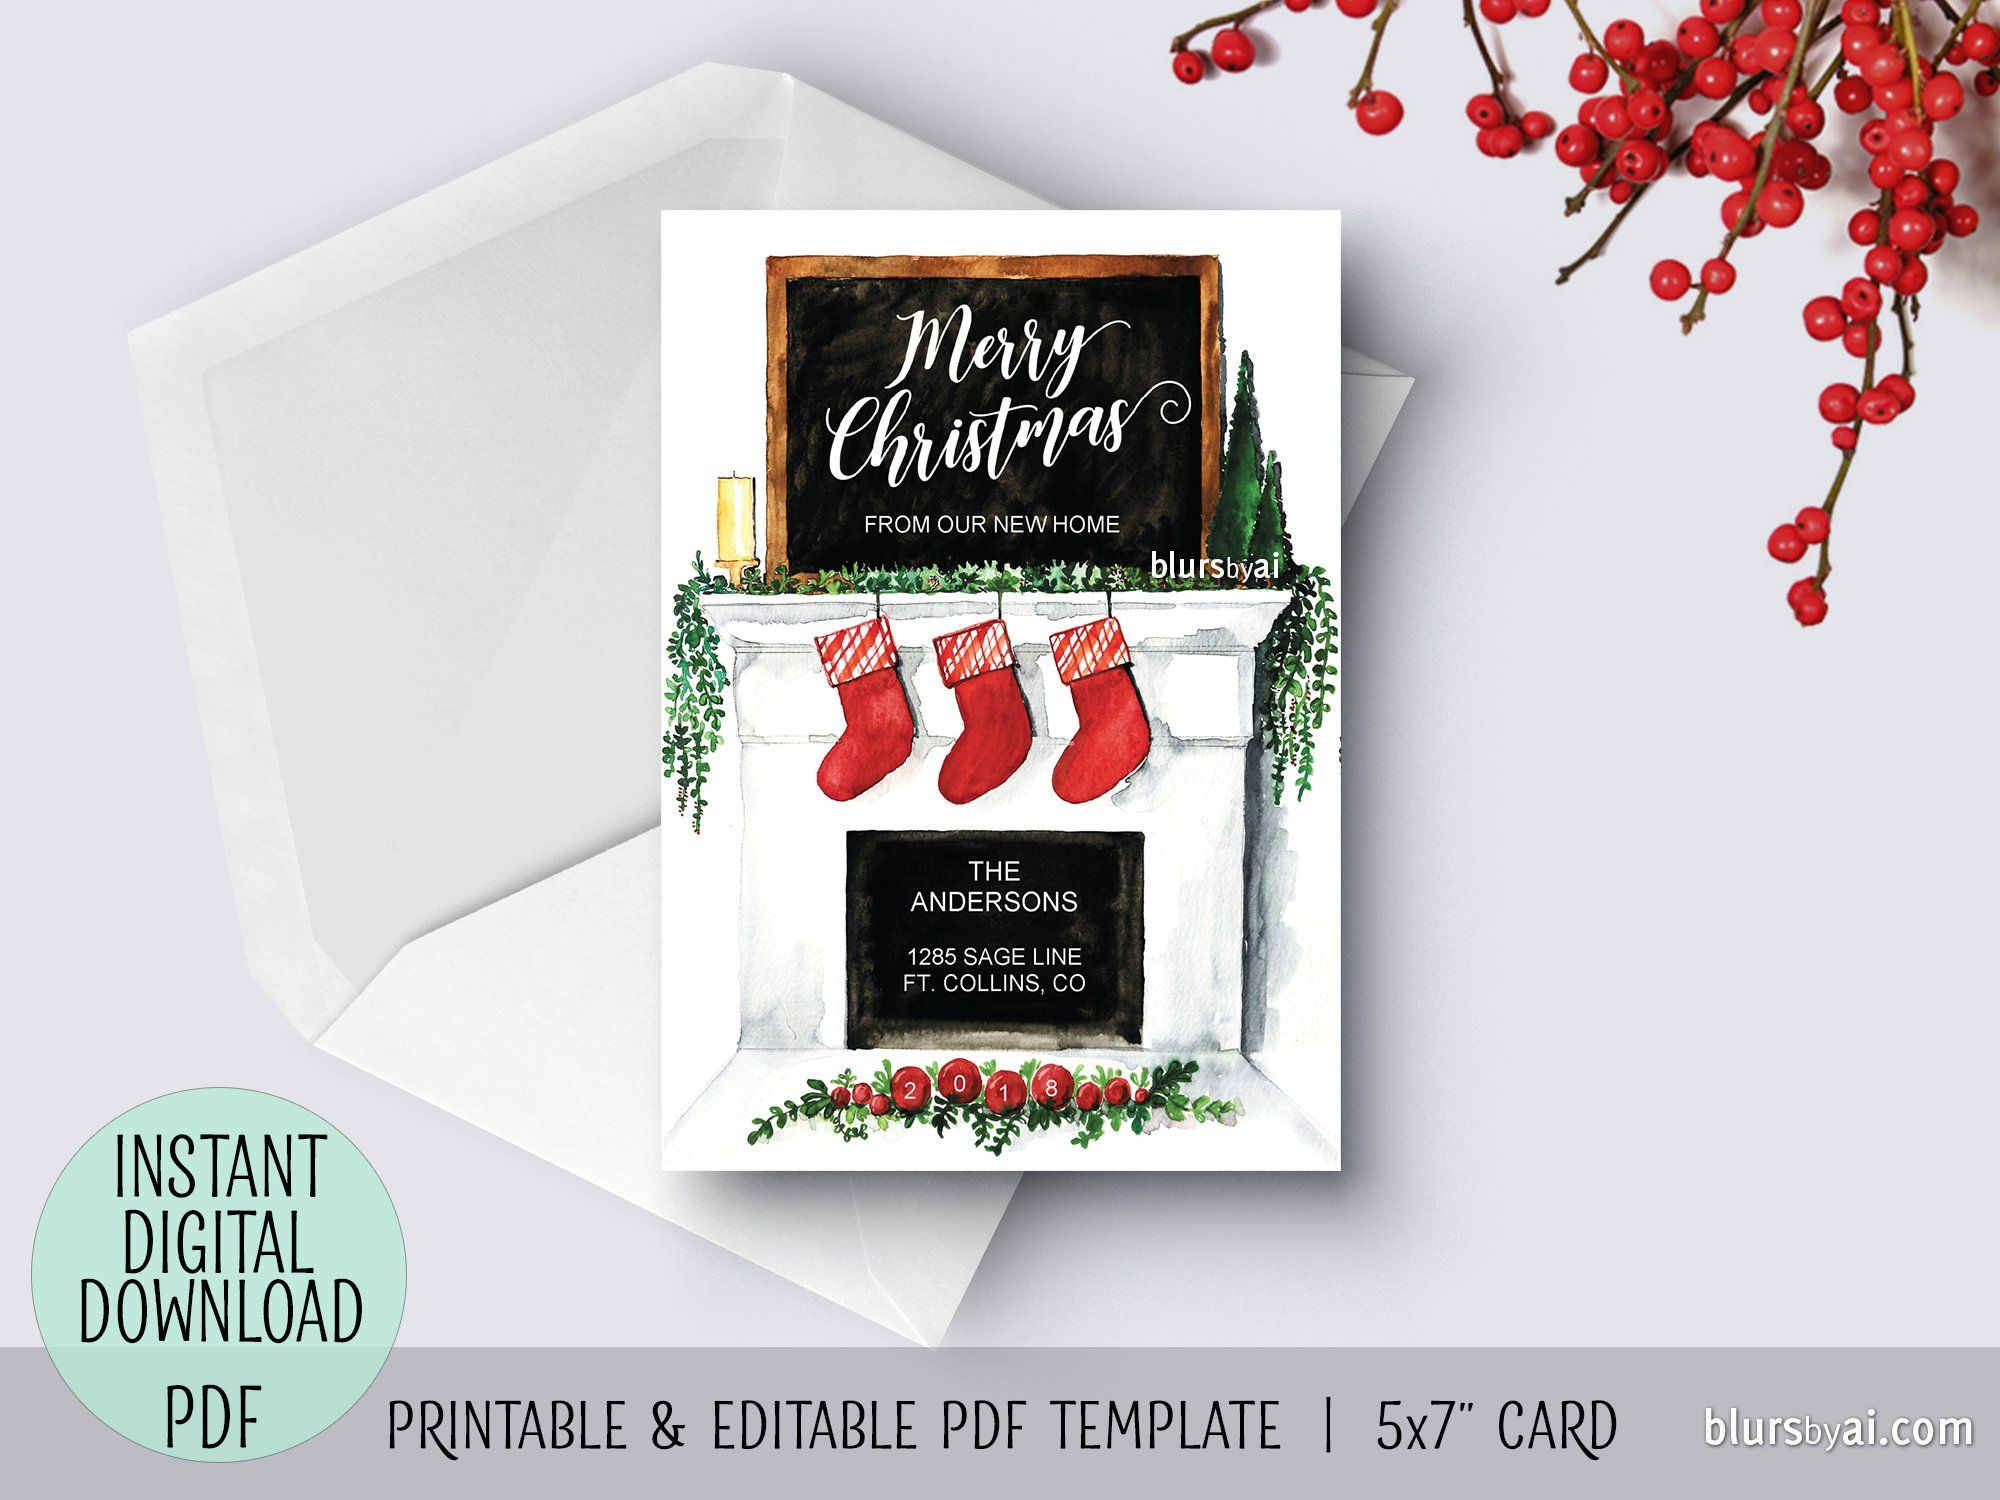 Editable Pdf Christmas Card Template New Home Watercolor Fireplace Mantel Christmas Card Template Christmas Cards Card Template